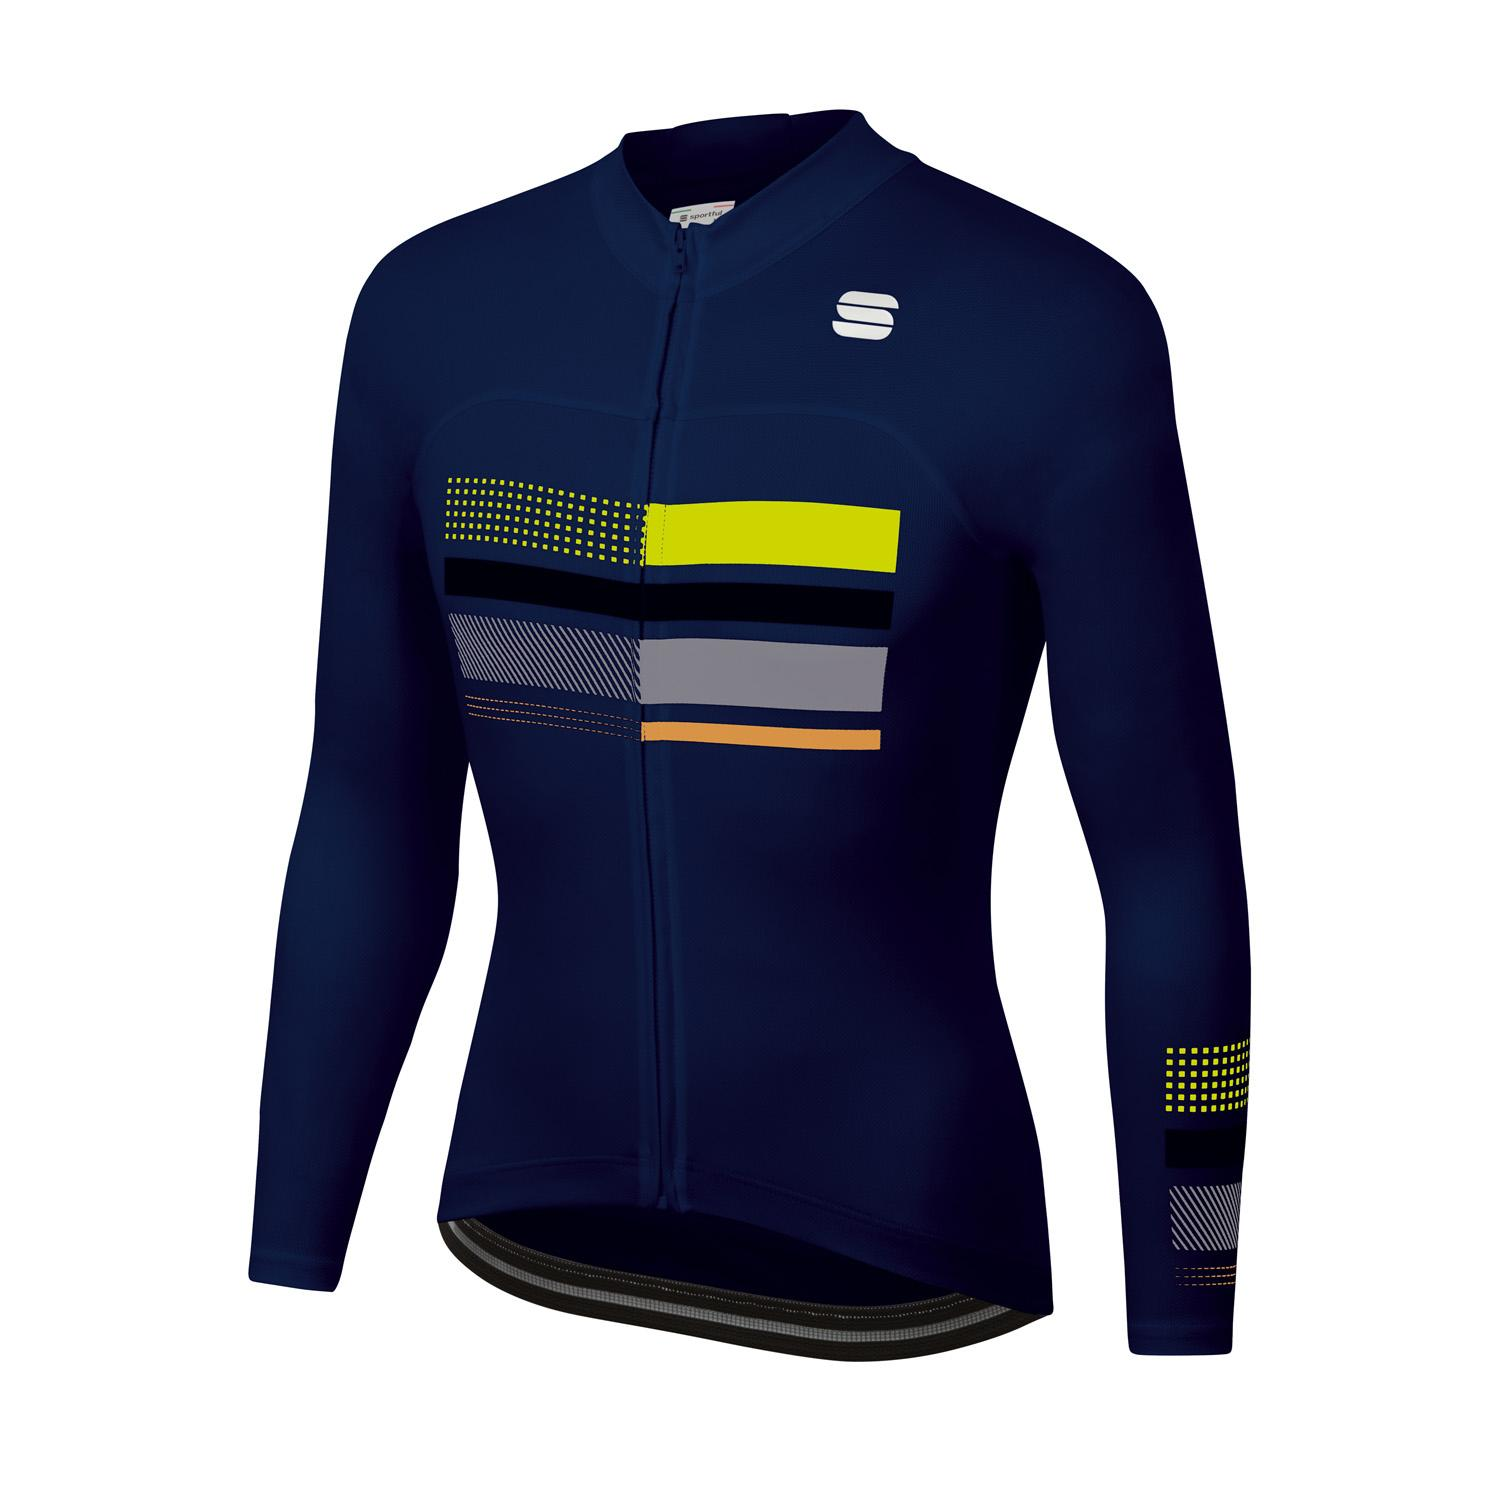 Sportful Fietsshirt lange mouwen Heren Blauw - WIRE THERMAL JERSEY BLUE